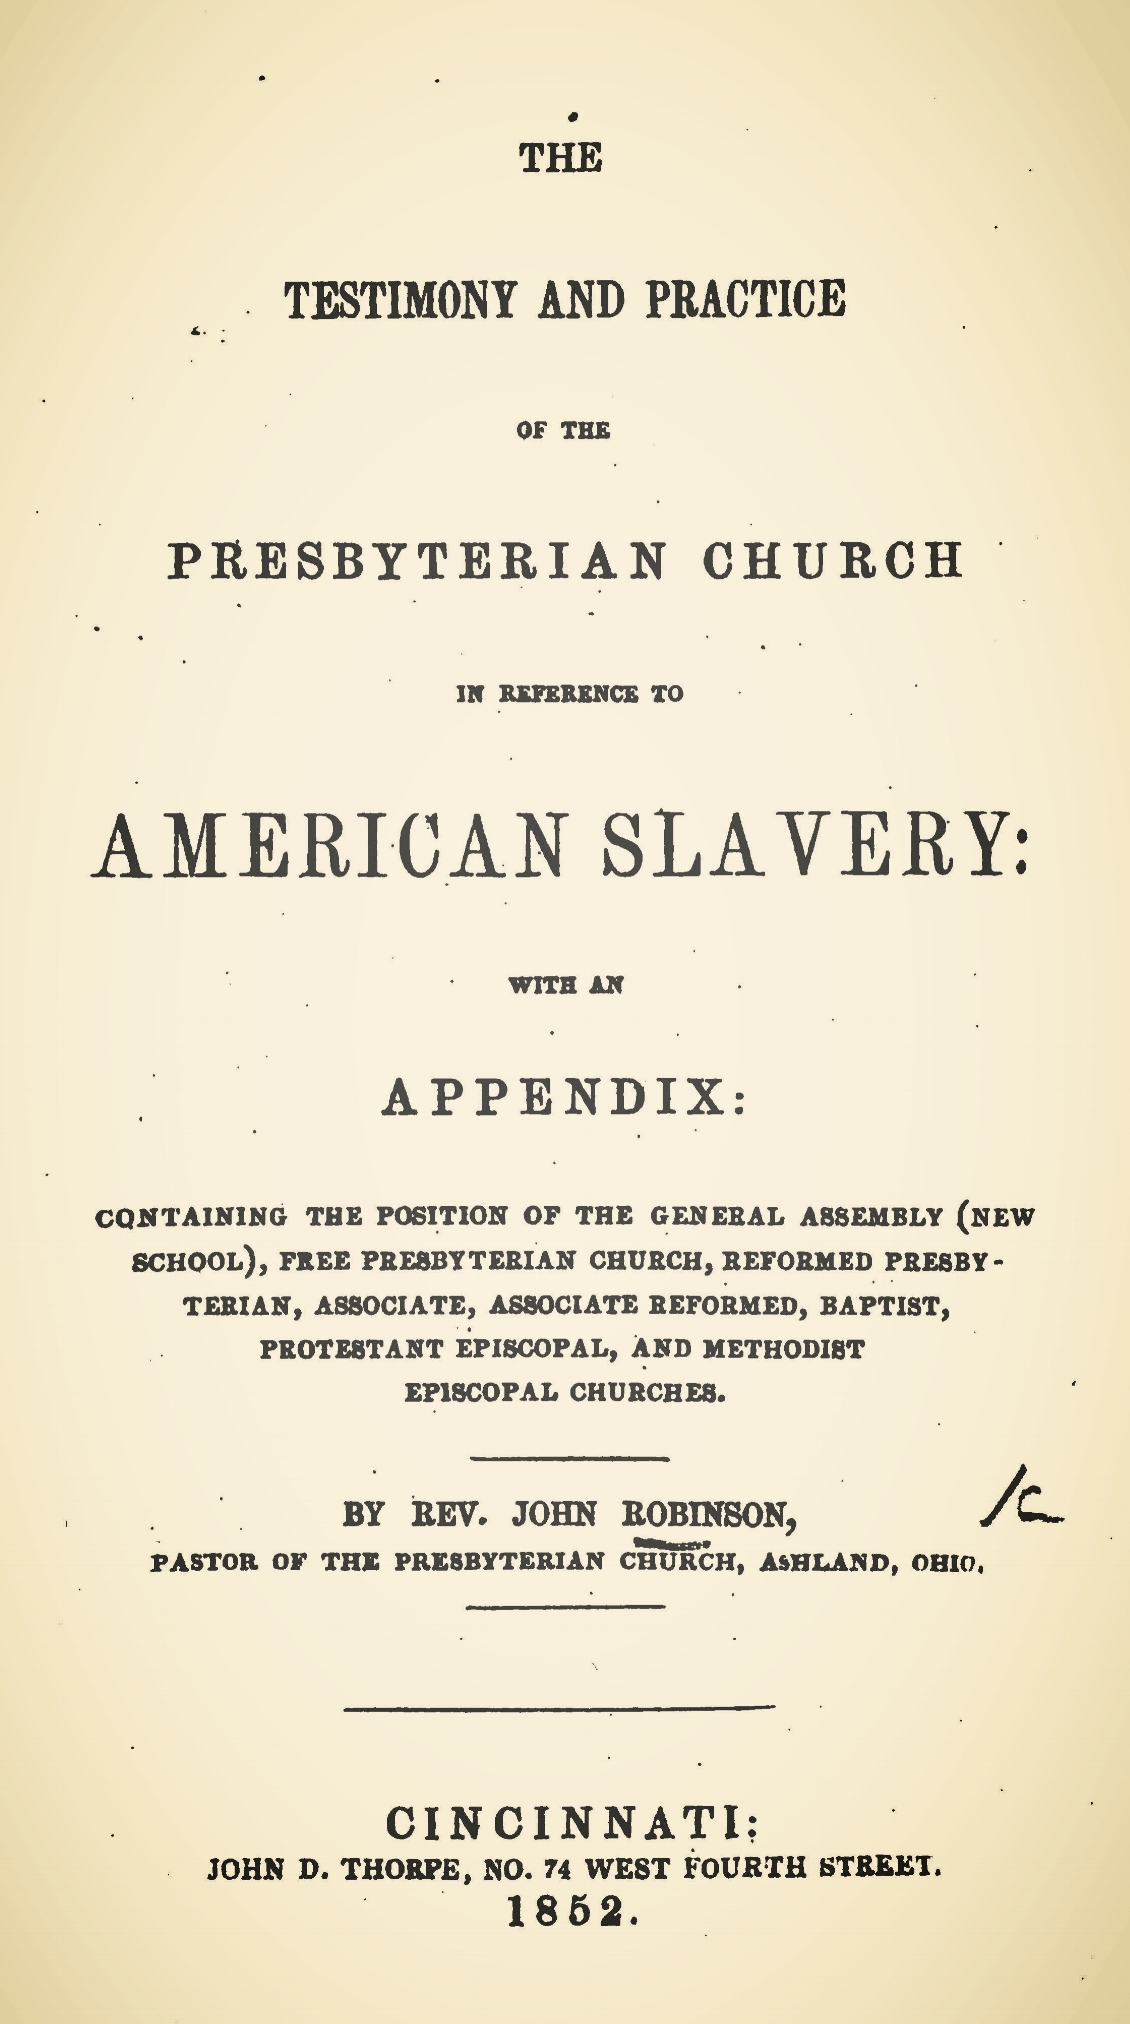 Robinson, John, The Testimony and Practice of the Presbyterian Church in Reference to American Slavery Title Page.jpg